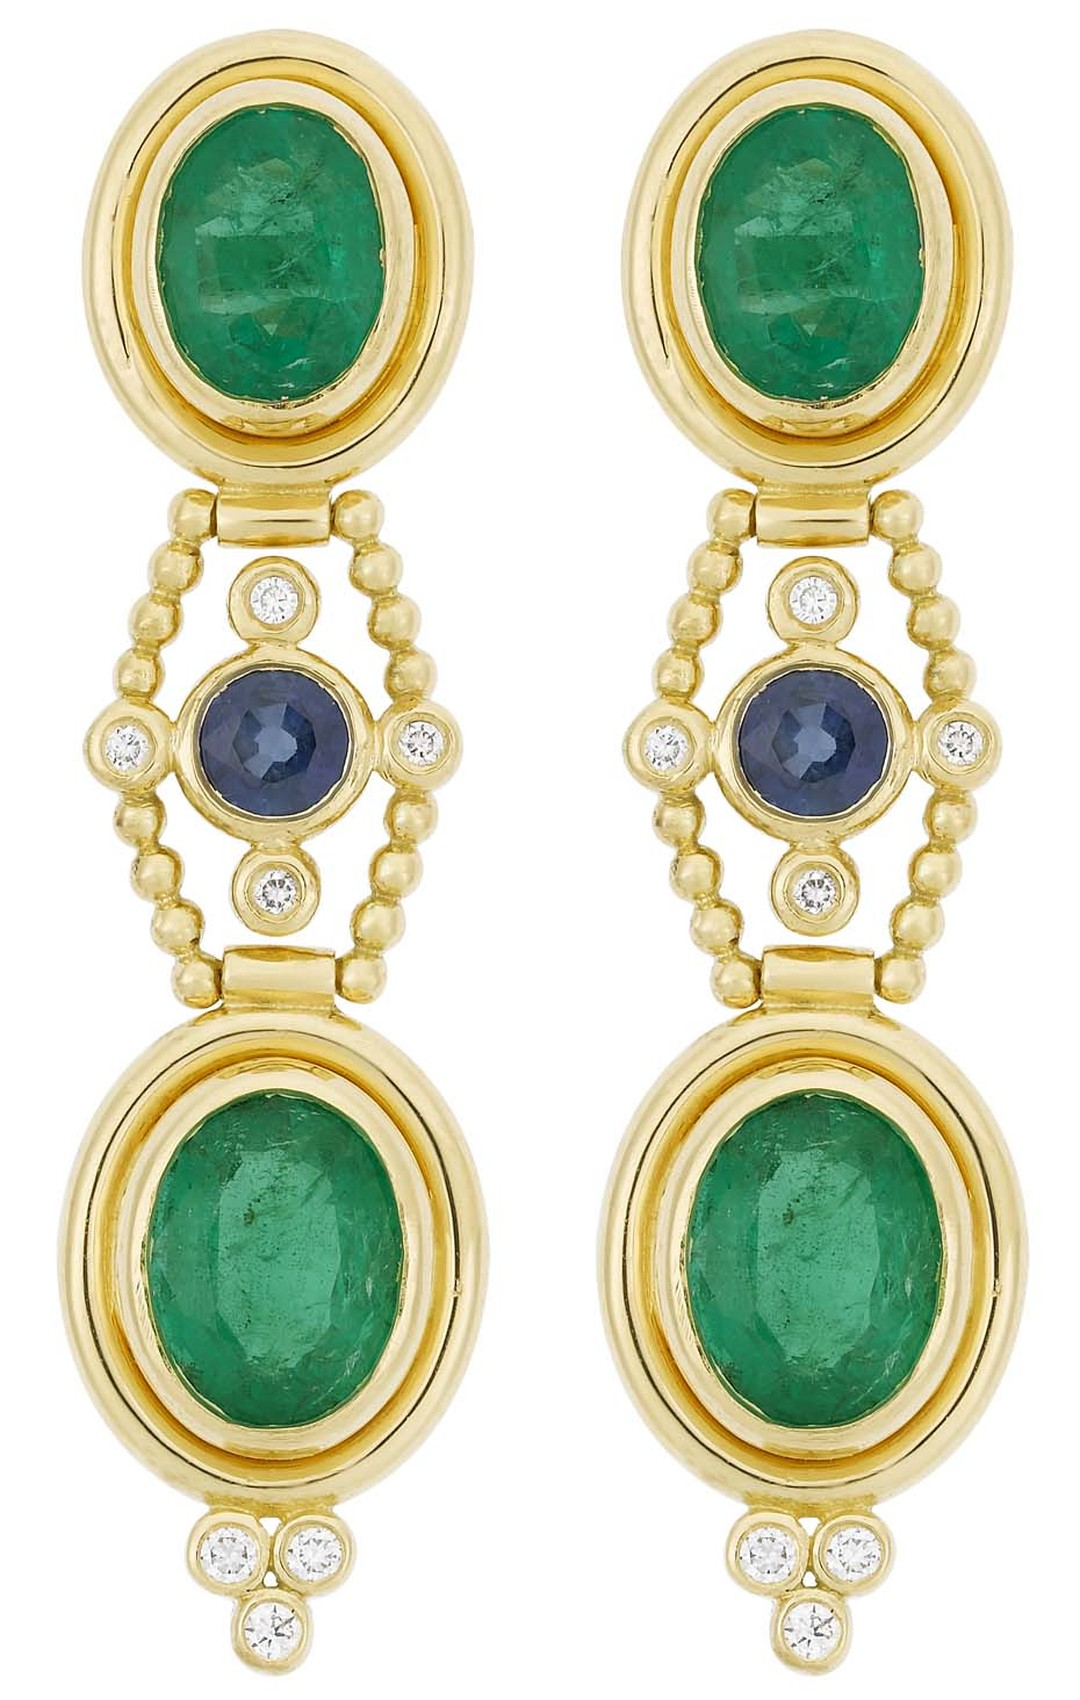 Temple St. Clair gold Theodora earrings with emerald, sapphire, and diamond earrings